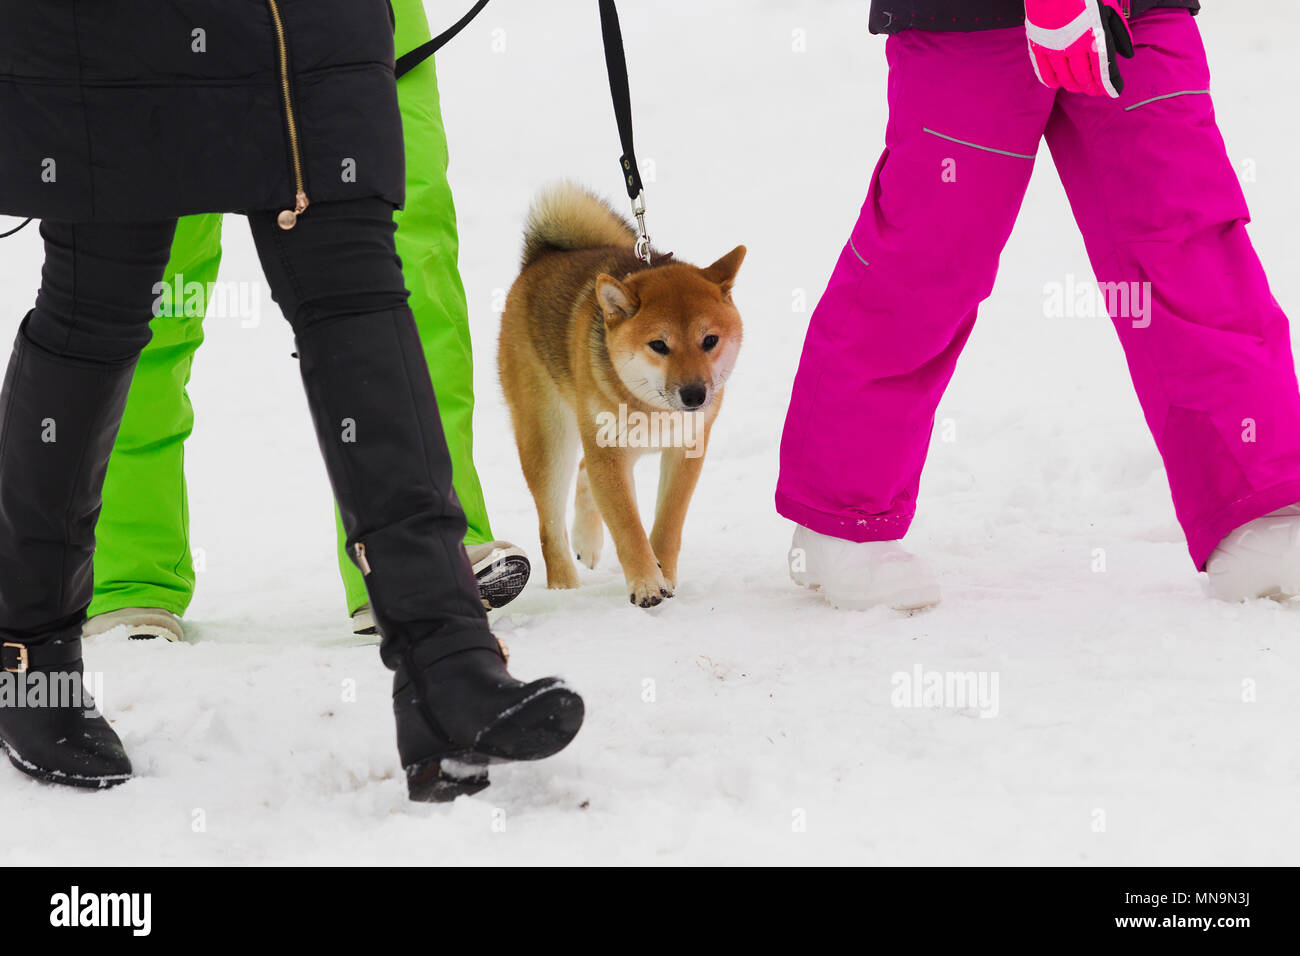 Japanese dog breed Shiba Inu between women walking legs - Stock Image